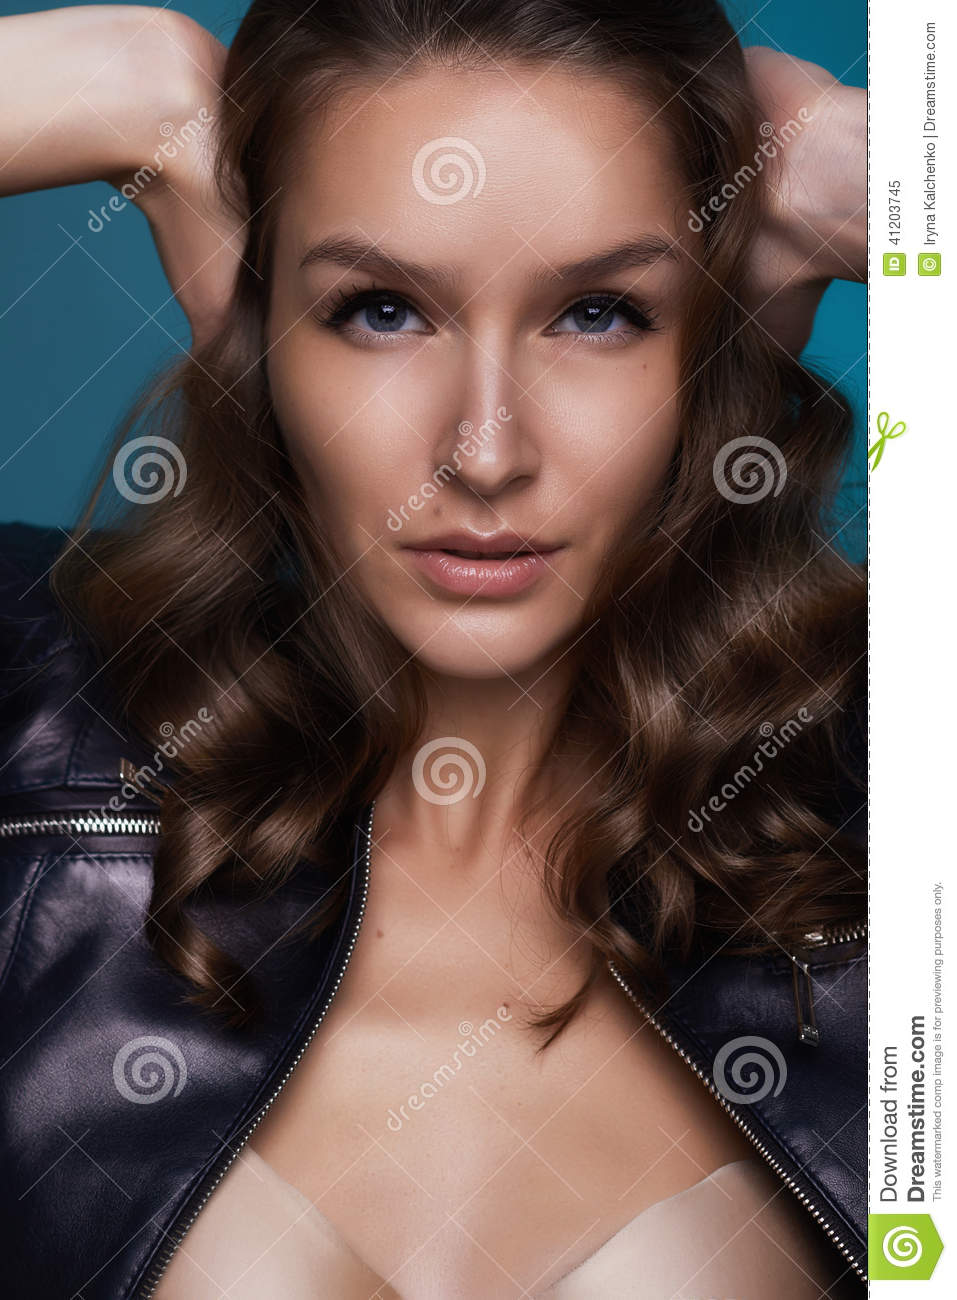 Beautiful Girl With Dark Curly Hair And Blue Eyes Covering Ears Stock Image Image Of Ears Beauty 41203745